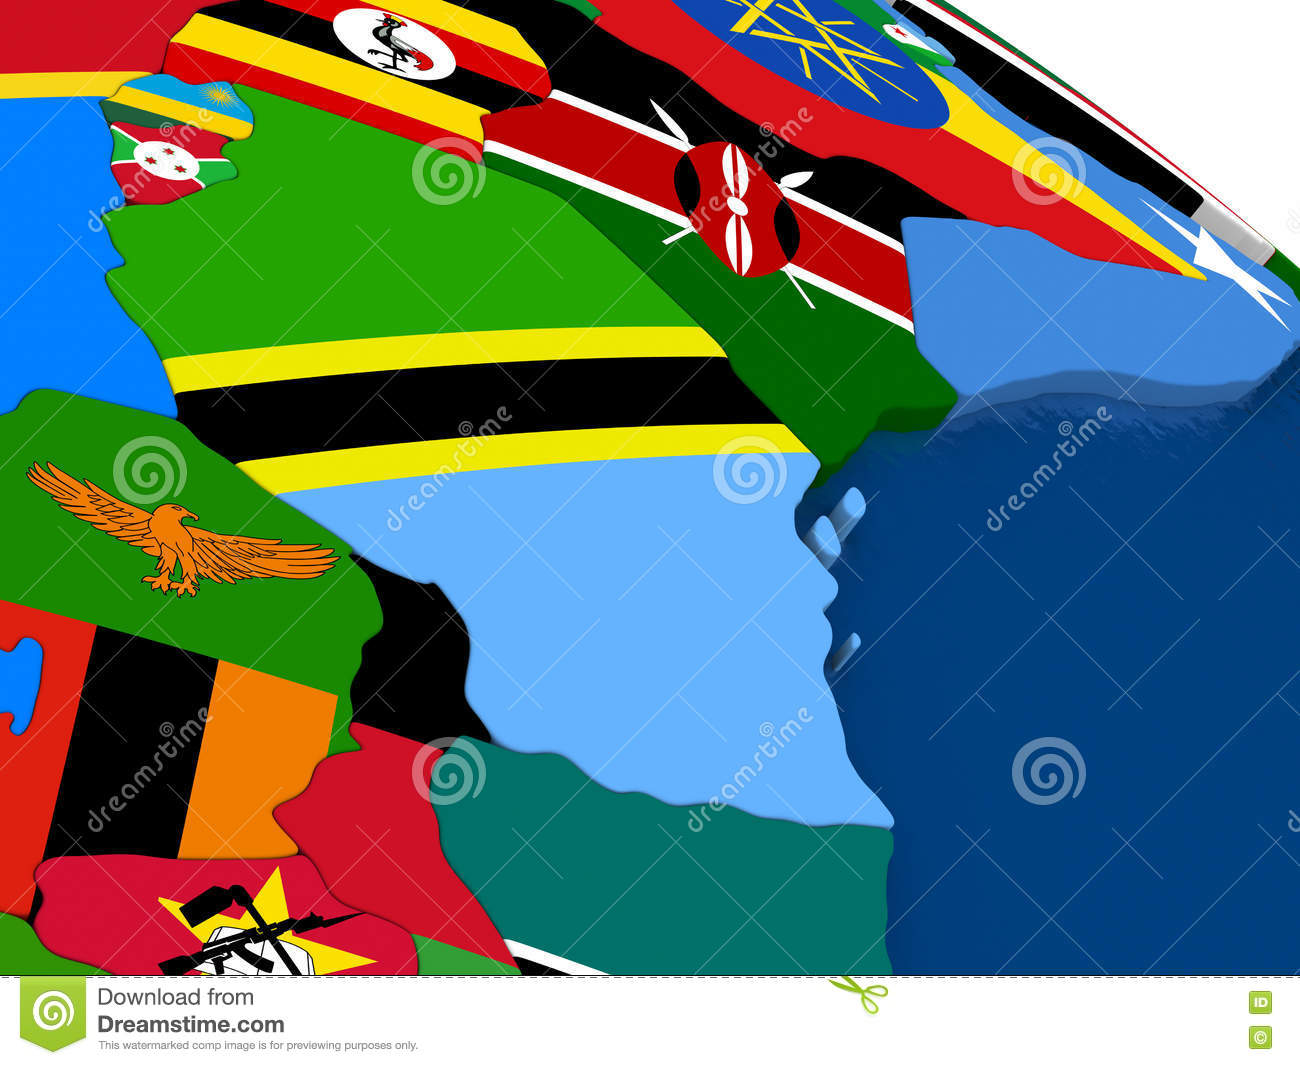 Picture of: Tanzania On 3d Map With Flags Stock Illustration Illustration Of Global Rendering 73328714